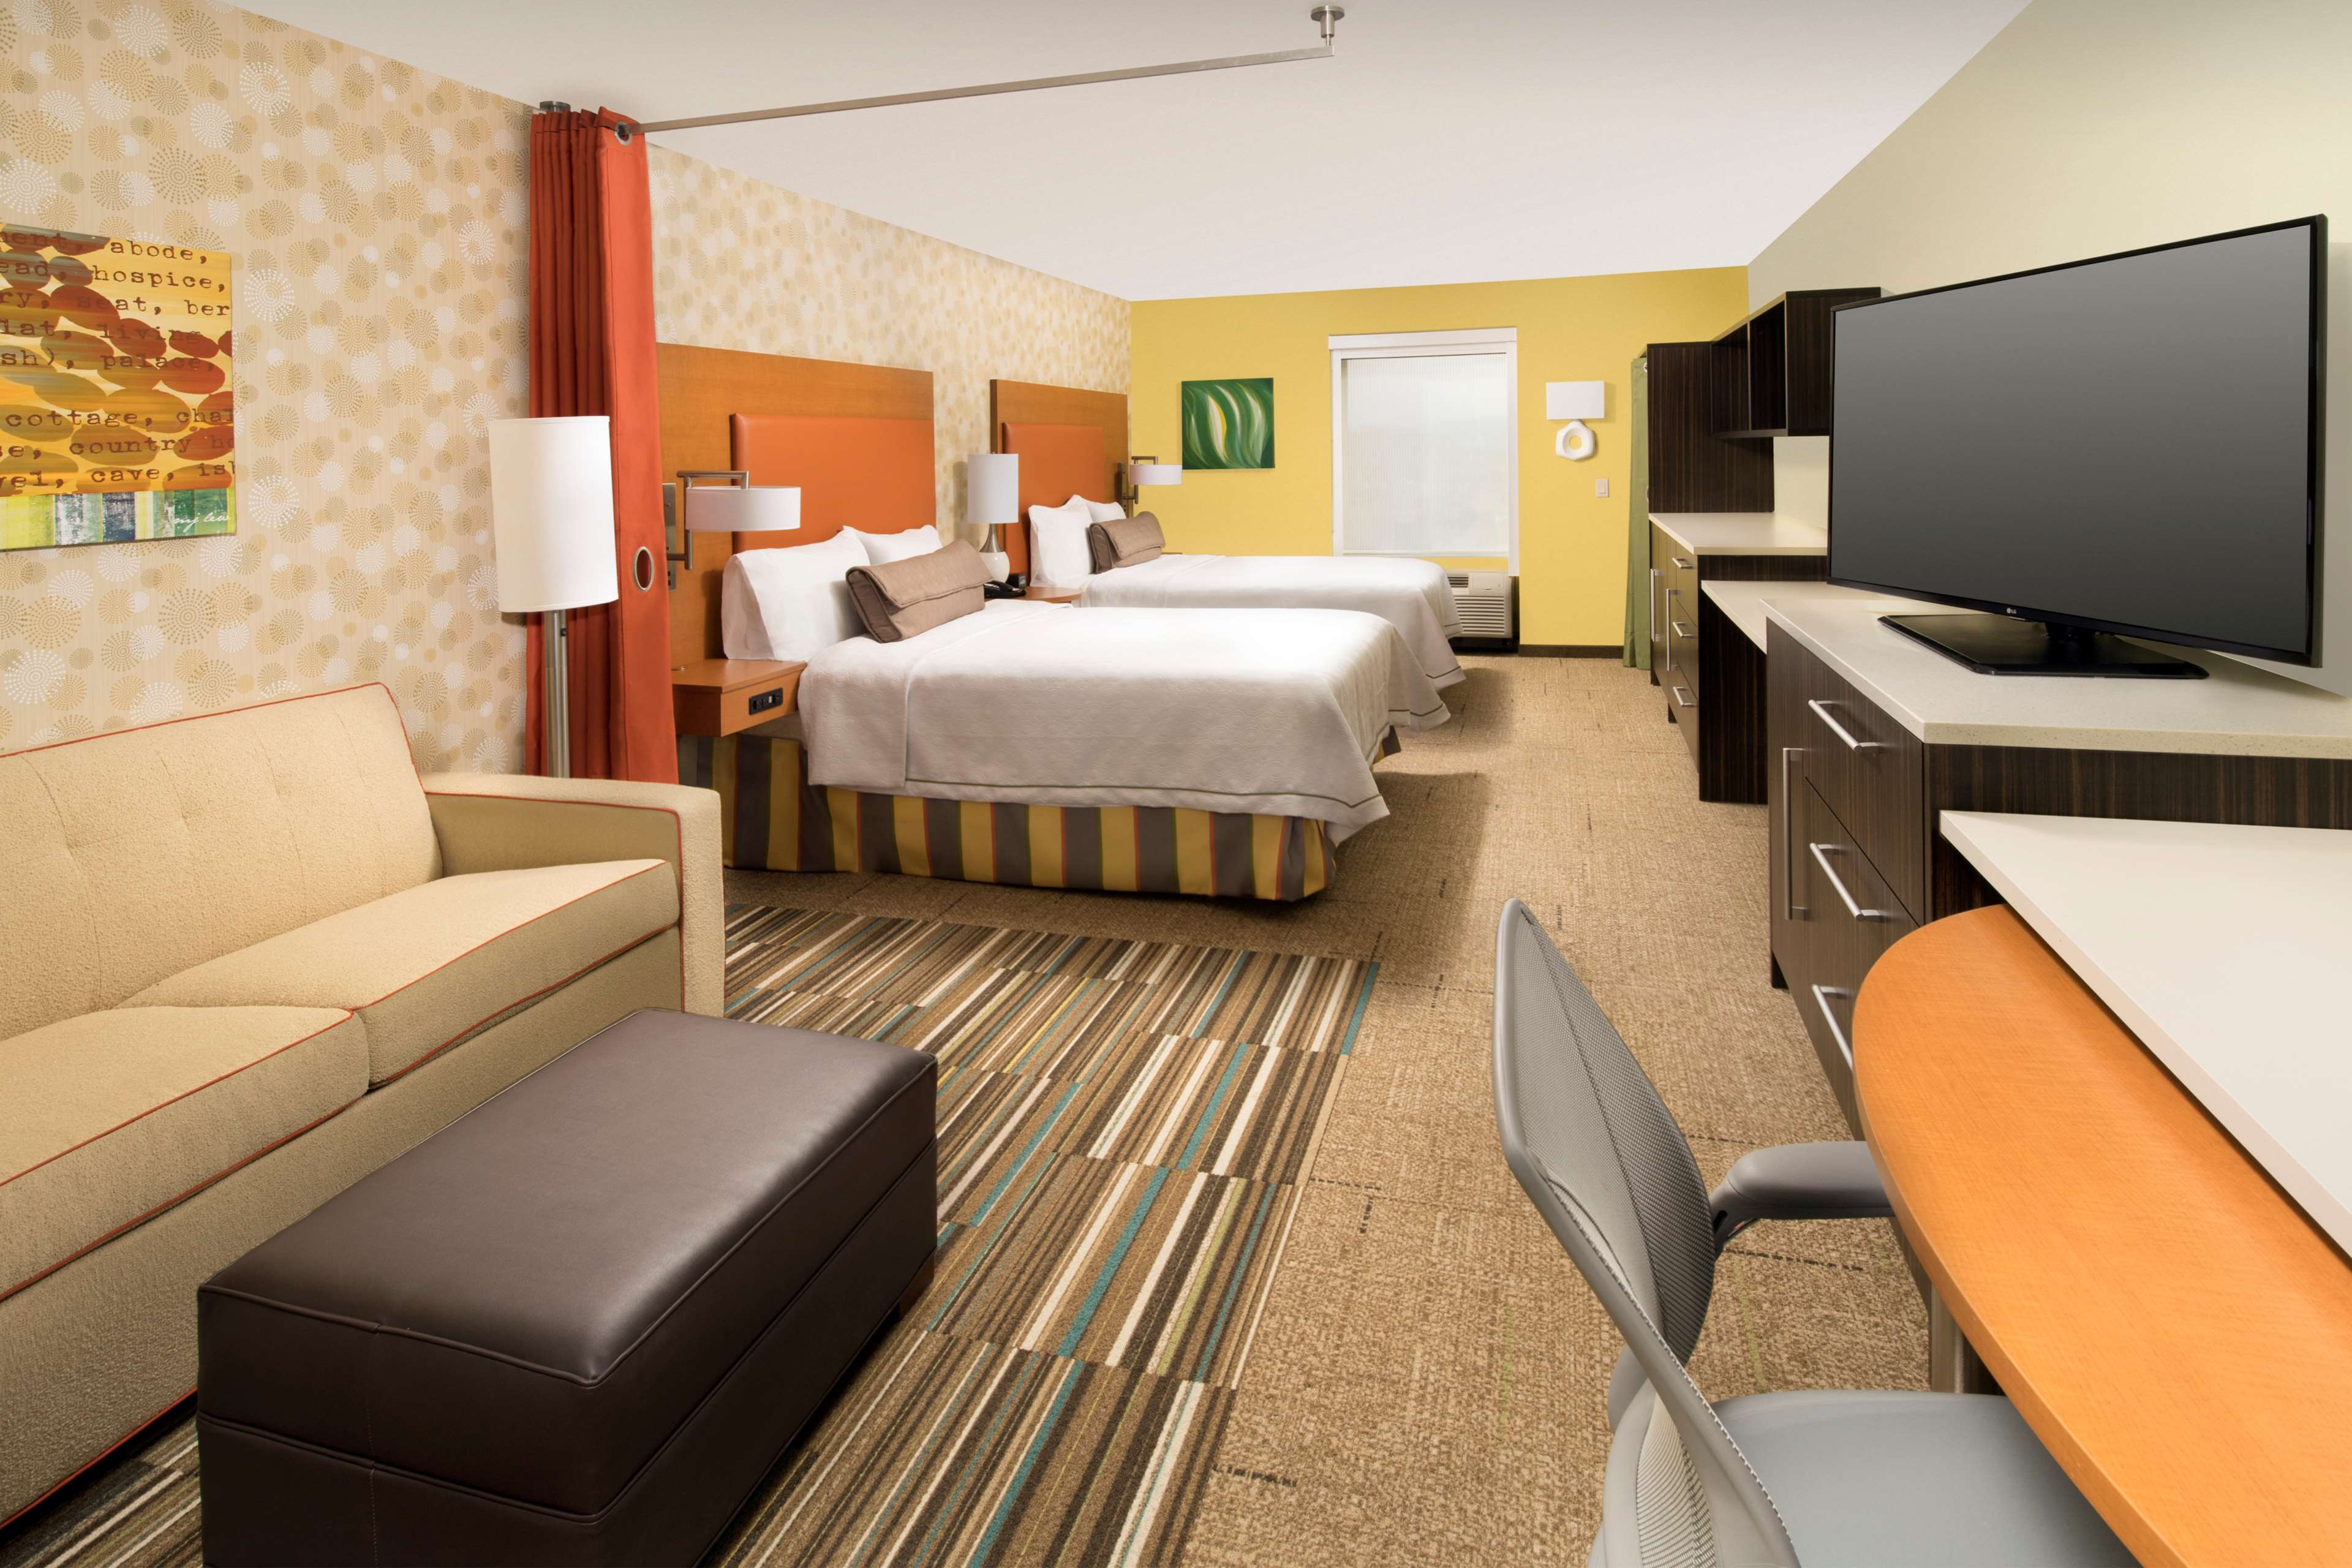 Home2 Suites by Hilton Denver International Airport image 3